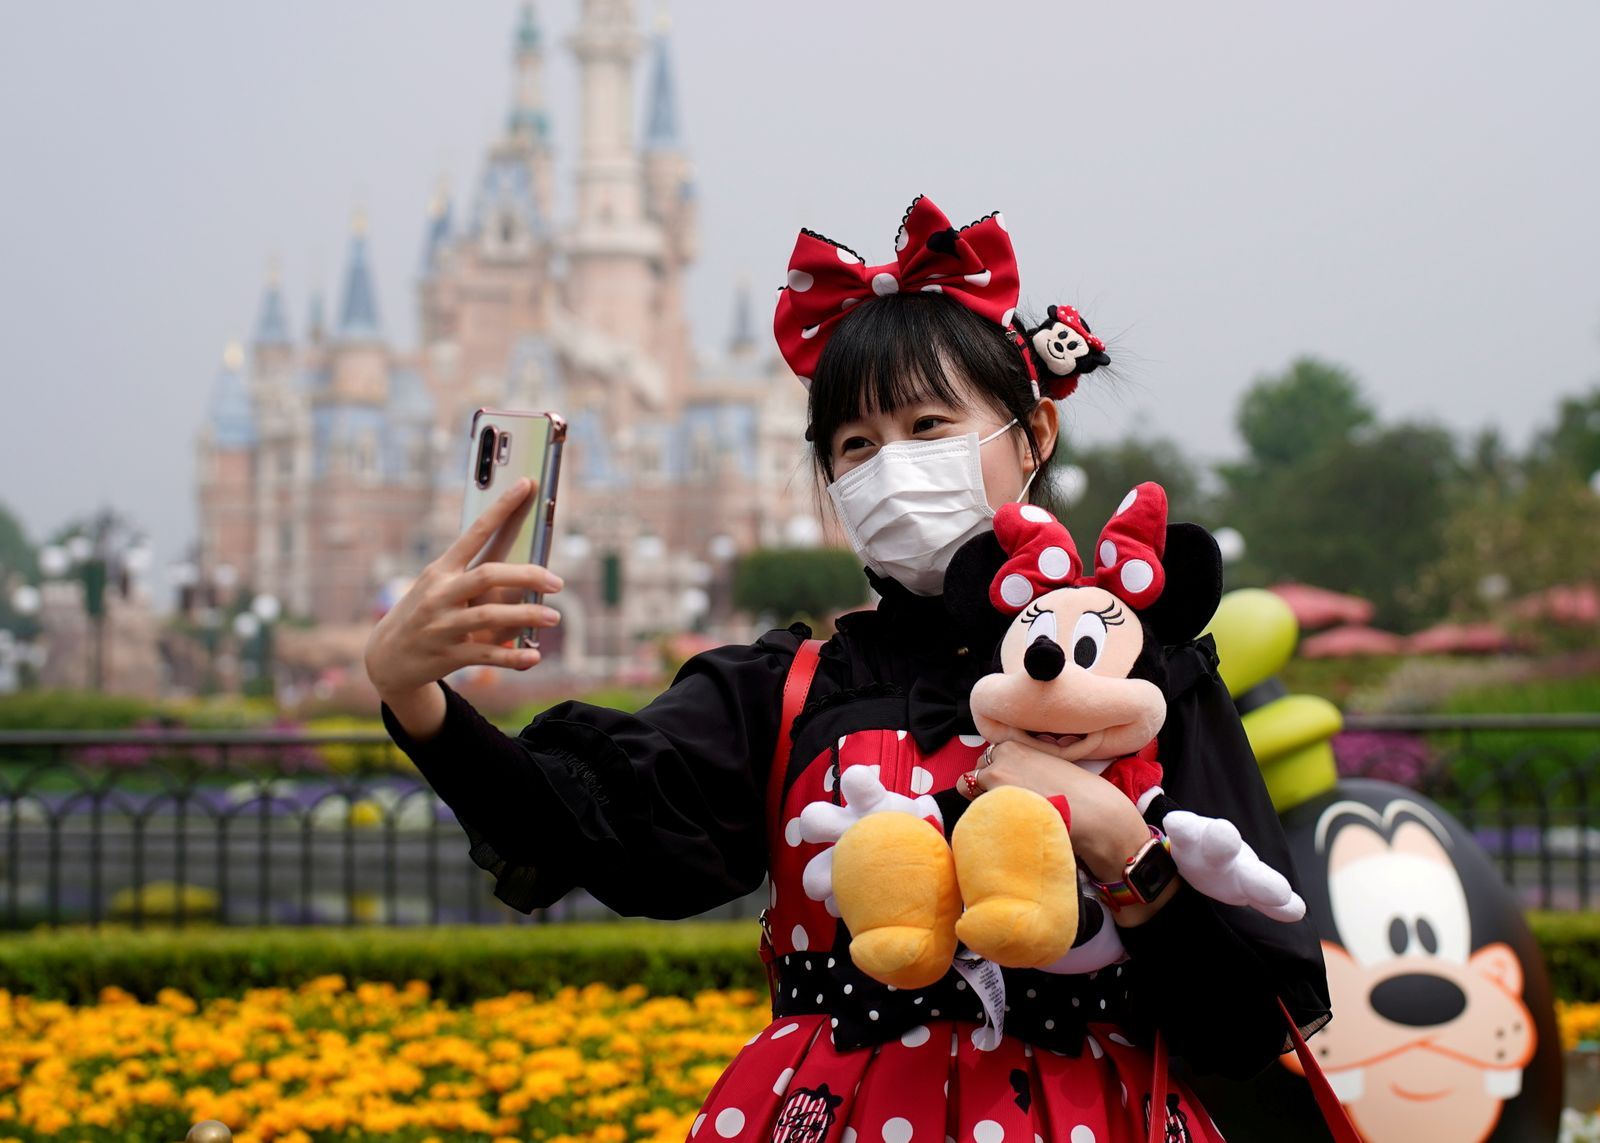 FILE PHOTO: A visitor takes a selfie while wearing a protective face mask at Shanghai Disney Resort as the Shanghai Disneyland theme park reopens following a shutdown due to the coronavirus disease (COVID-19) outbreak, in Shanghai